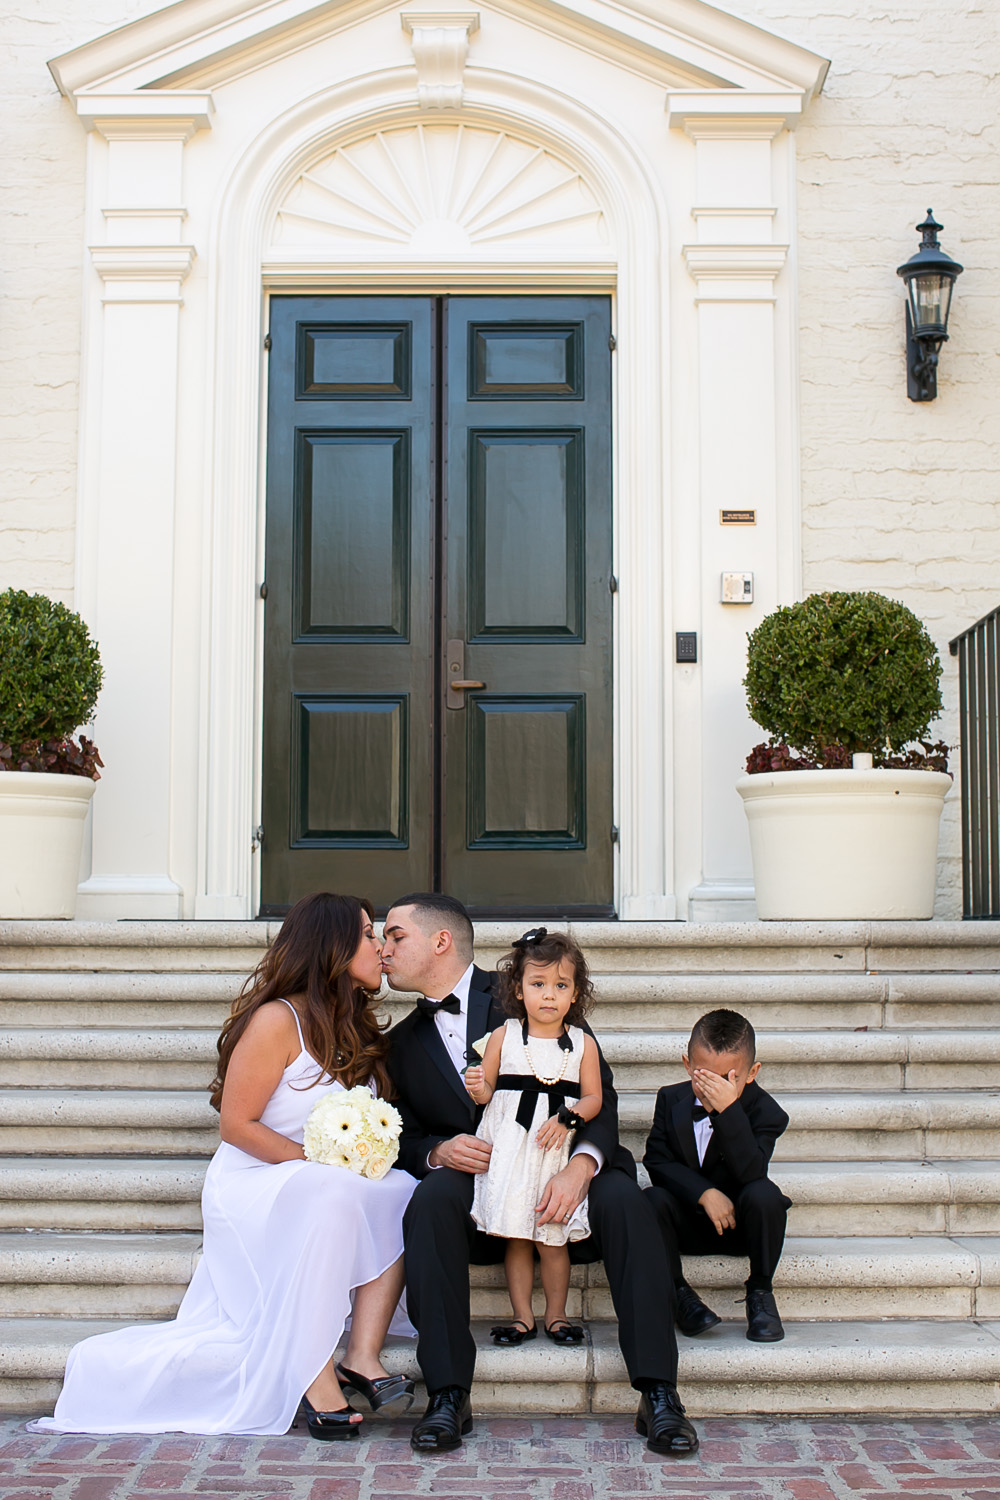 beverly hills courthouse, wedding, love, family, bride, groom, los angeles wedding photography, chris holt photography